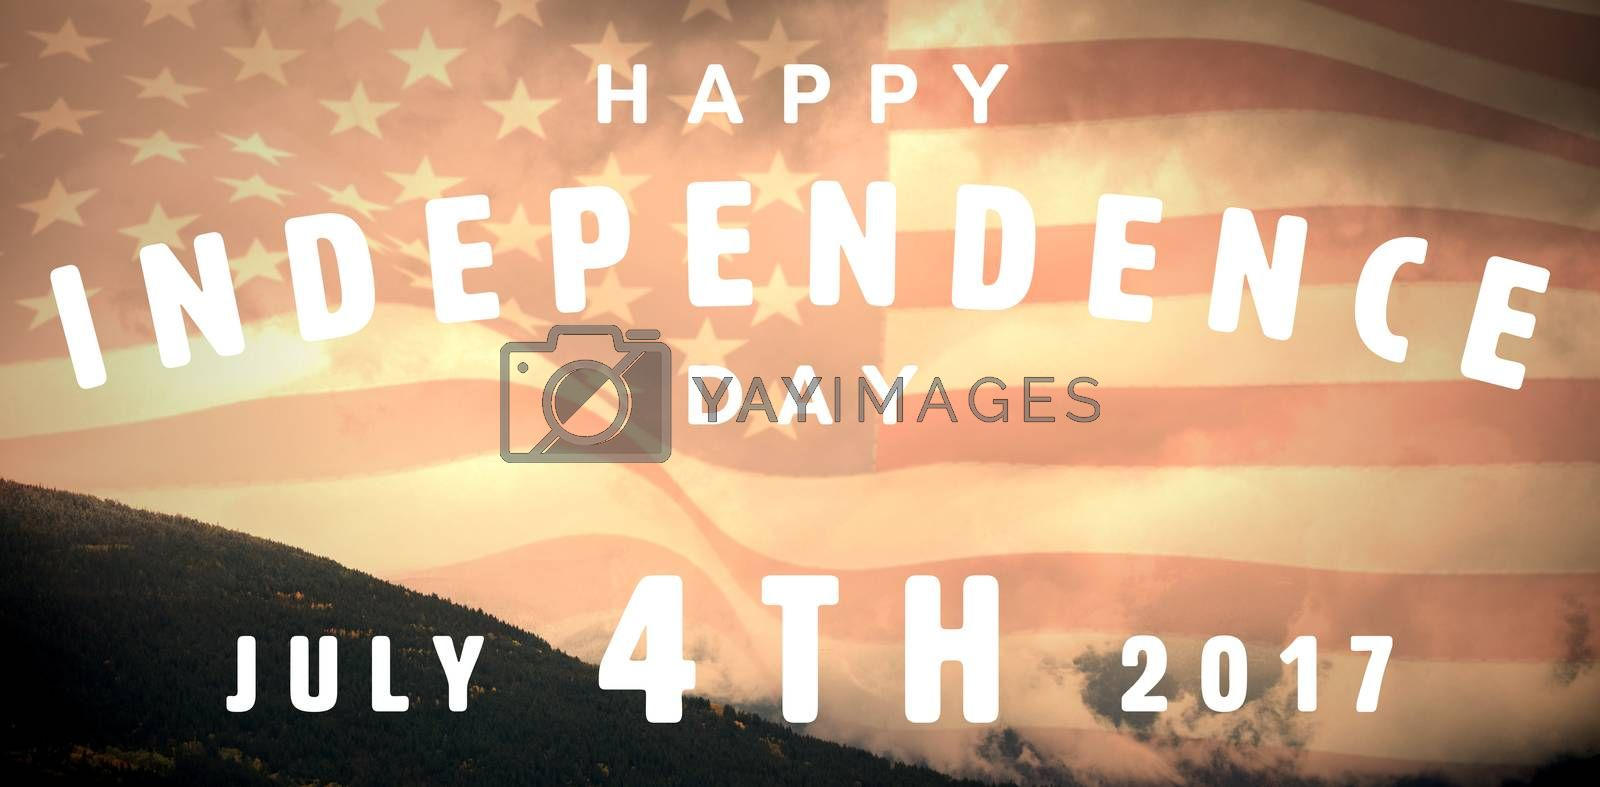 Happy 4th of july text on white background against view of mountain and cloudy sky